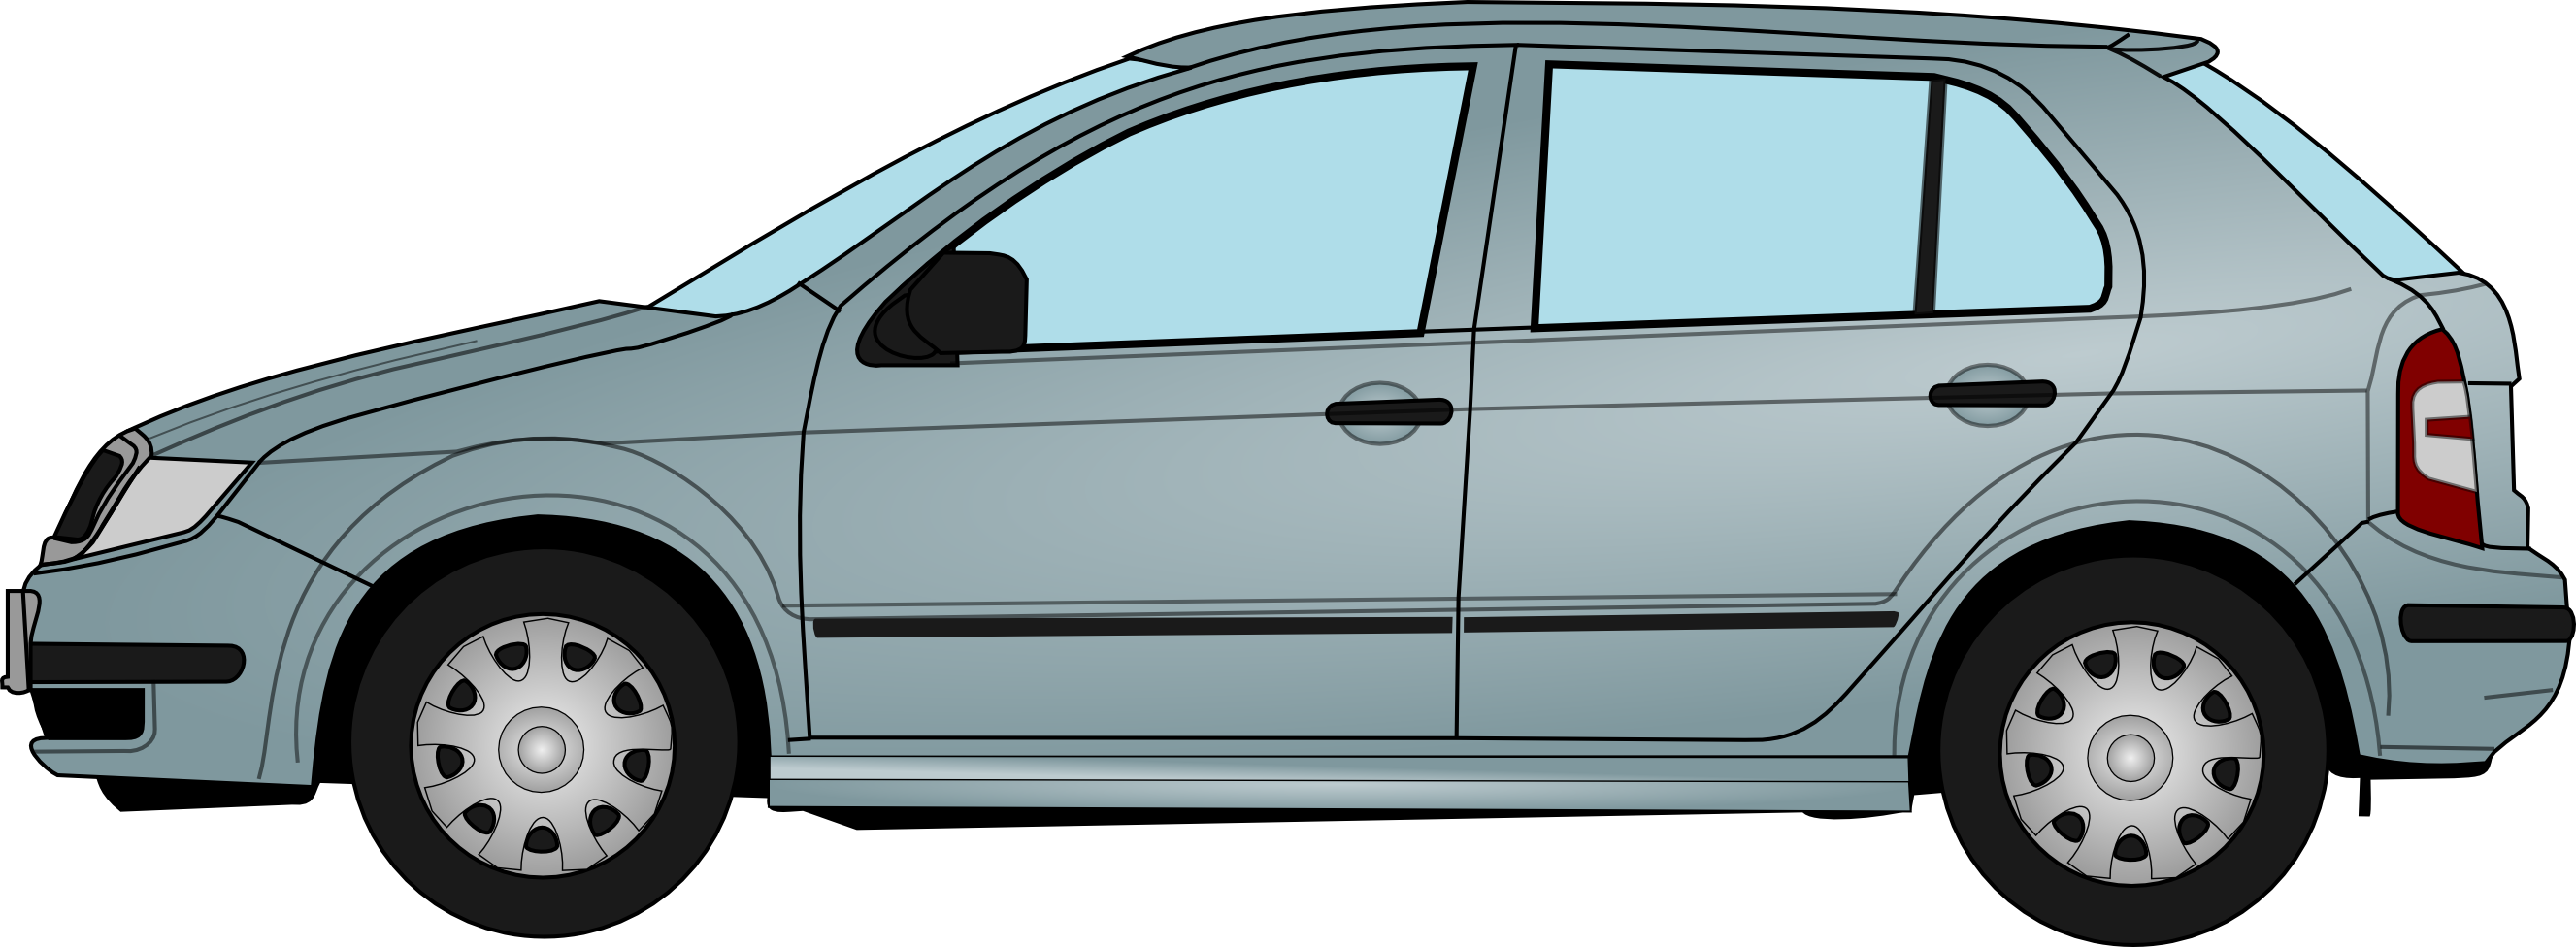 how to draw a car in profile